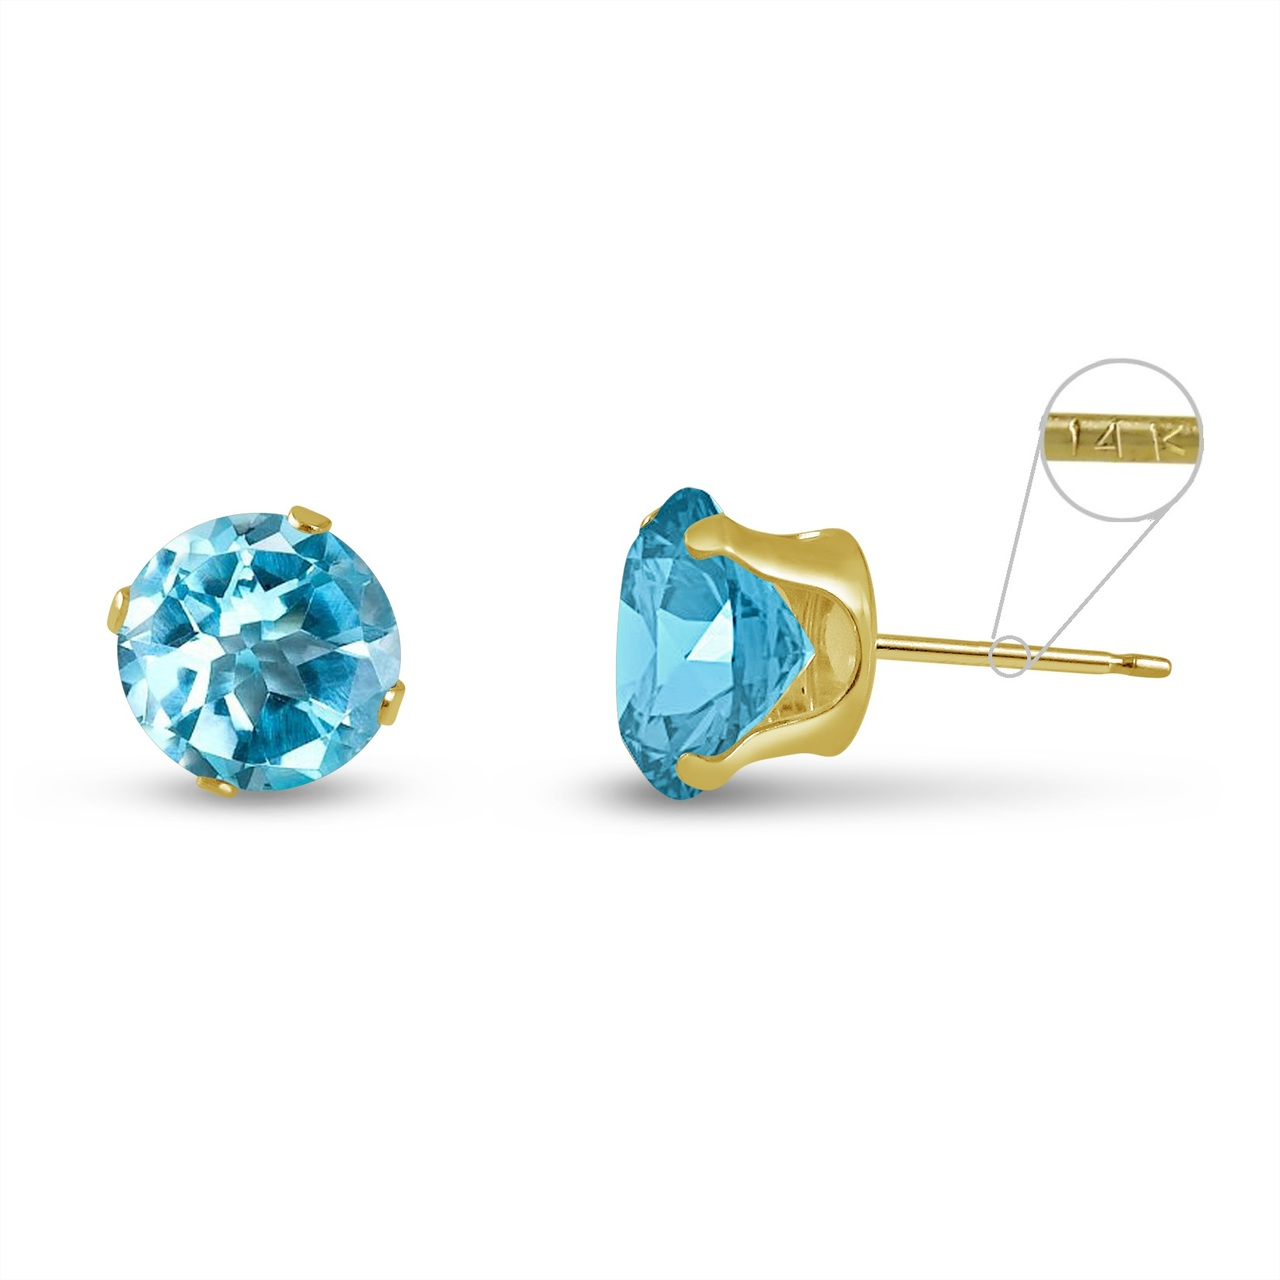 Choose Your Size Genuine Swiss Blue Topaz 10K Yellow Gold Round Stud Earrings